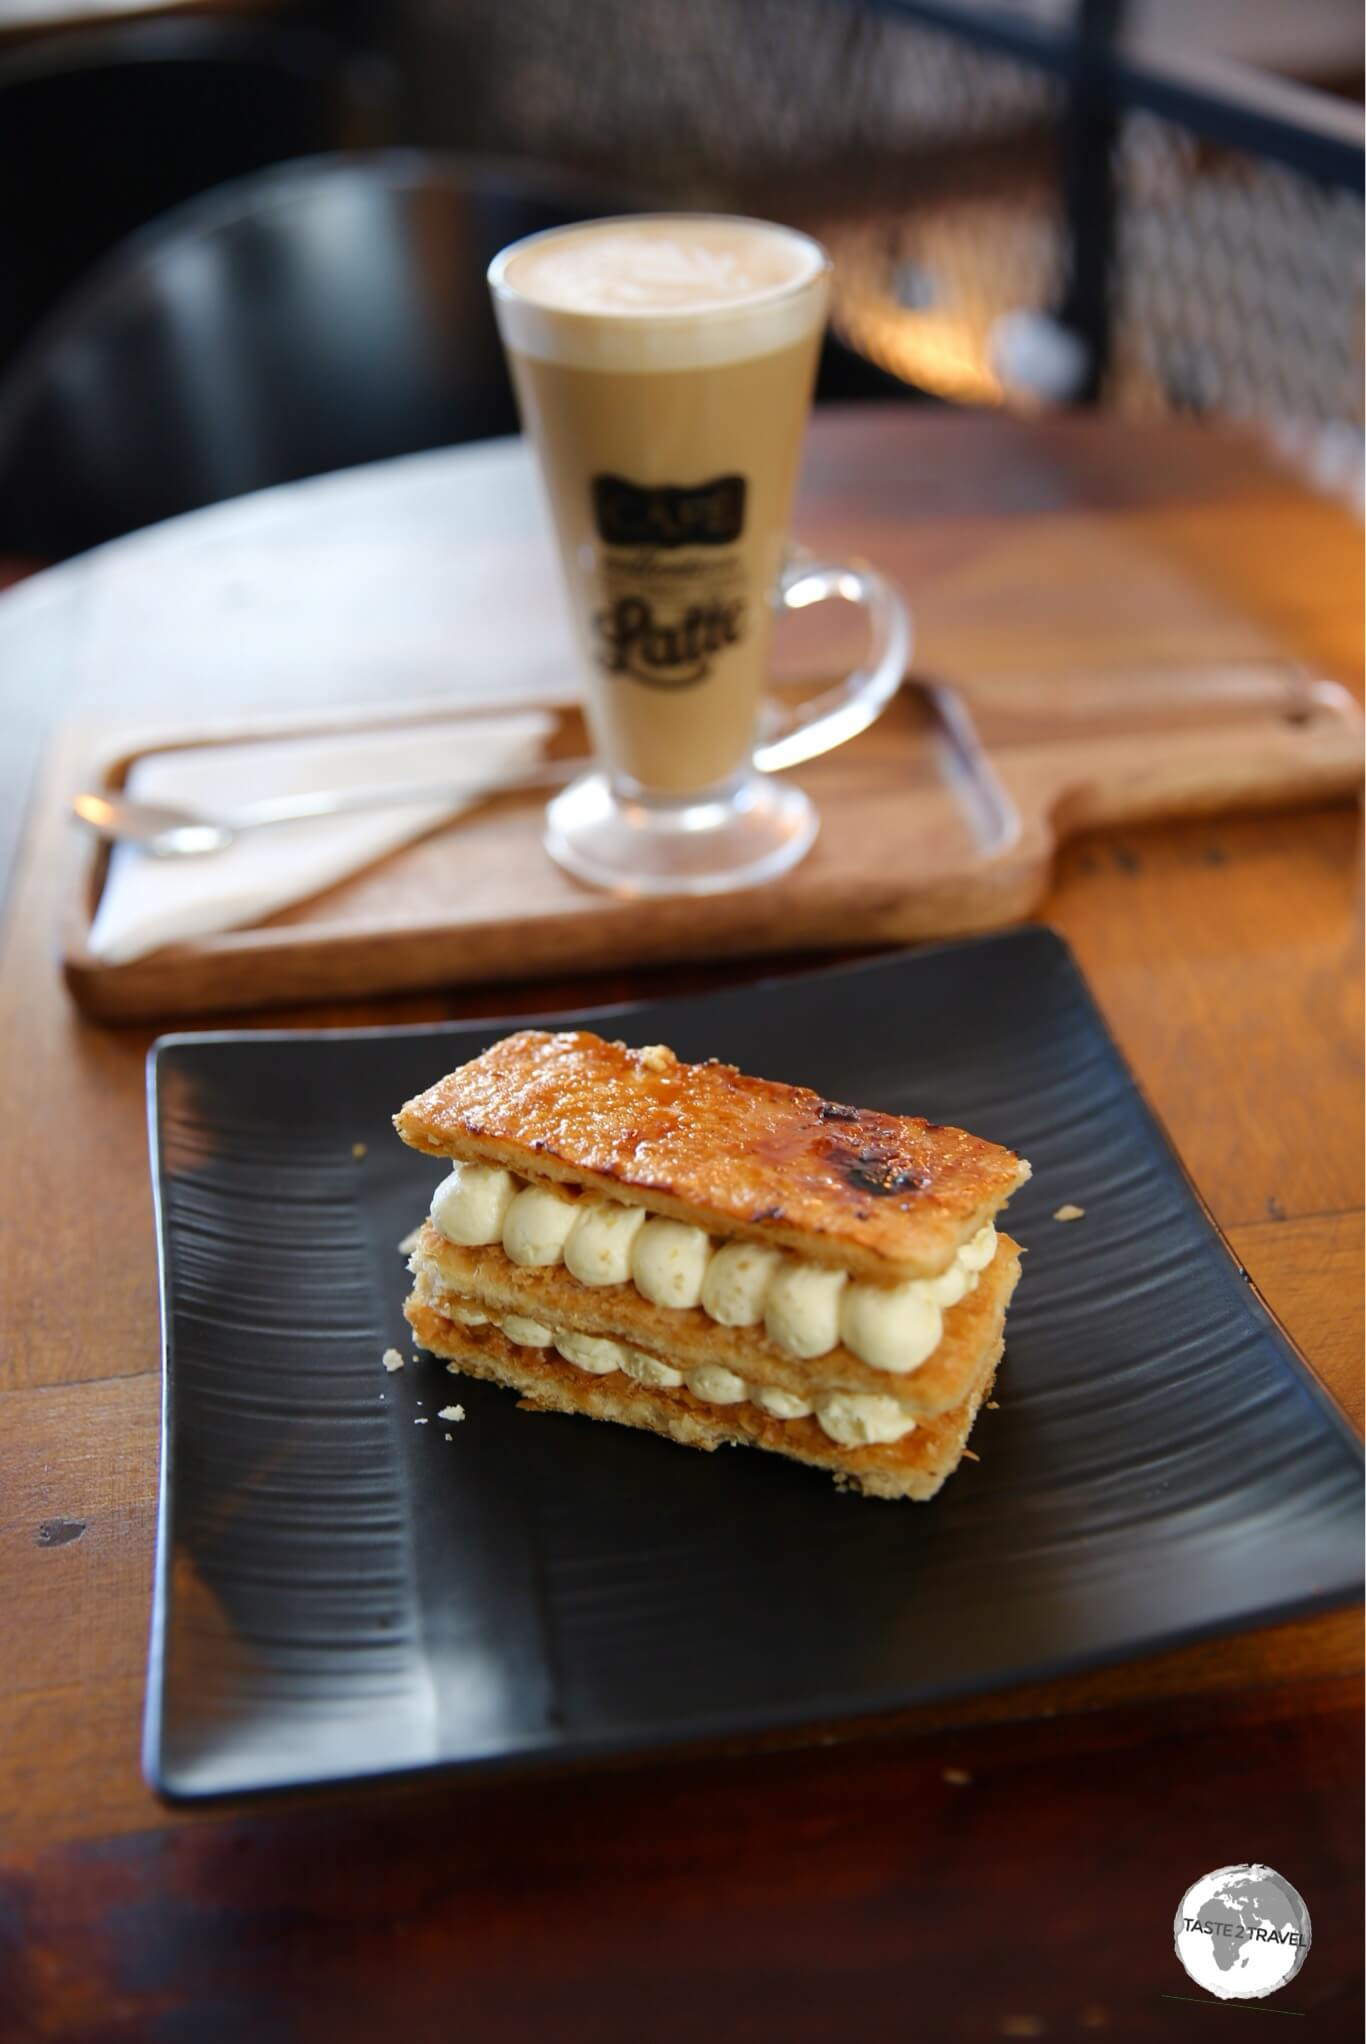 A cafe latte and an amazing 'mille-feuille' at Cafe de la Presse.